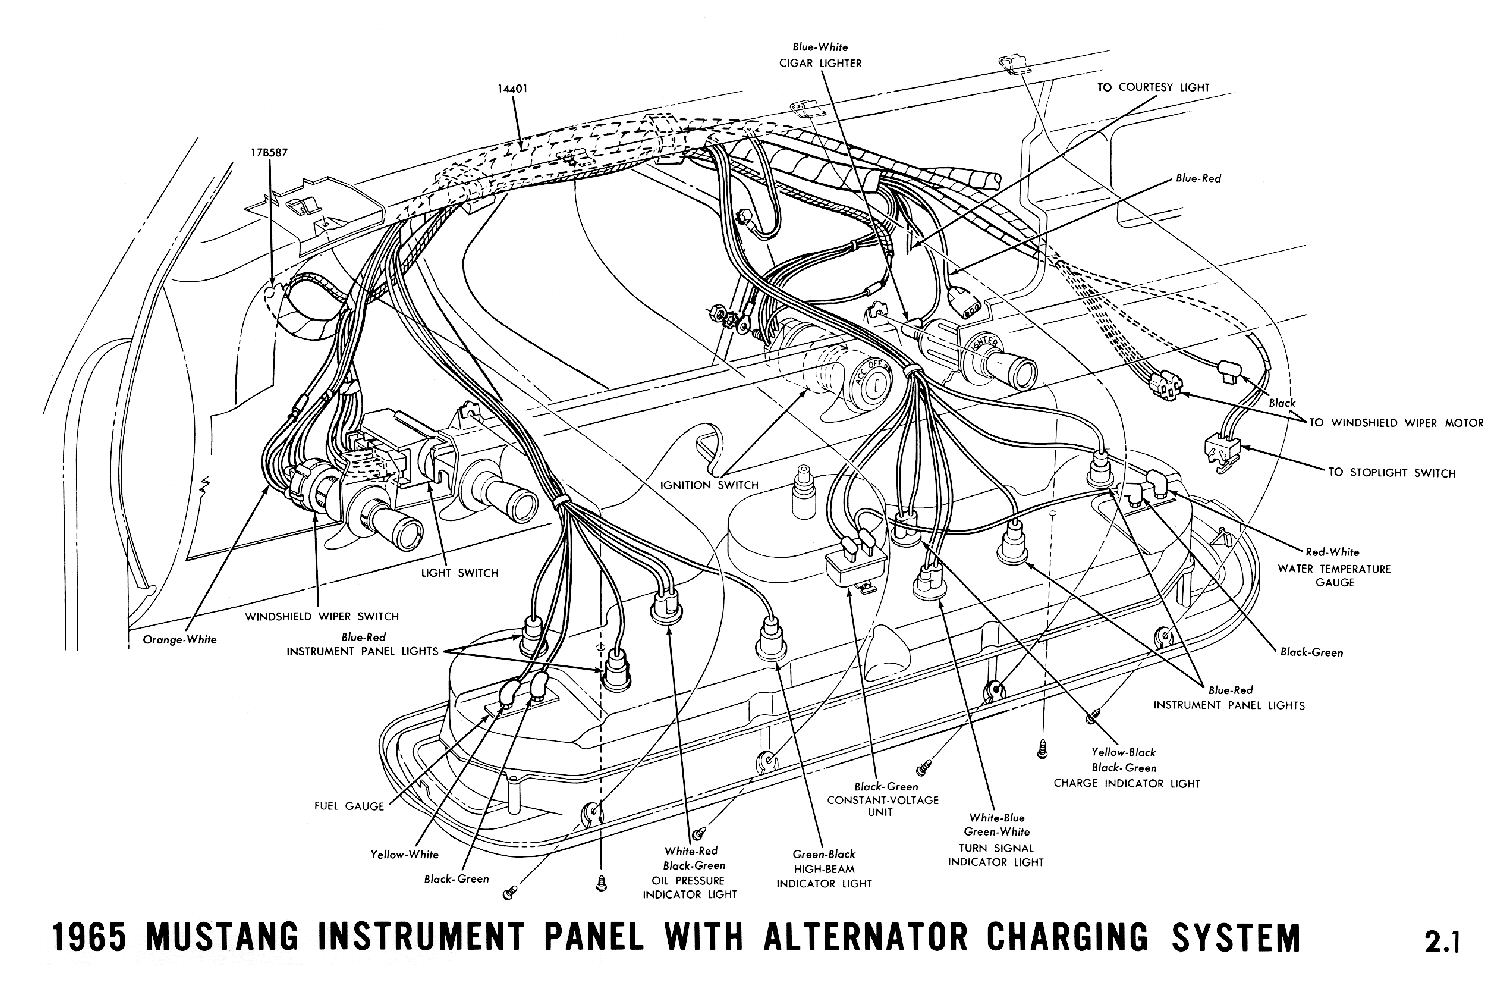 1965a 1965 mustang wiring diagrams average joe restoration 1965 Mustang Restoration Guide at gsmx.co